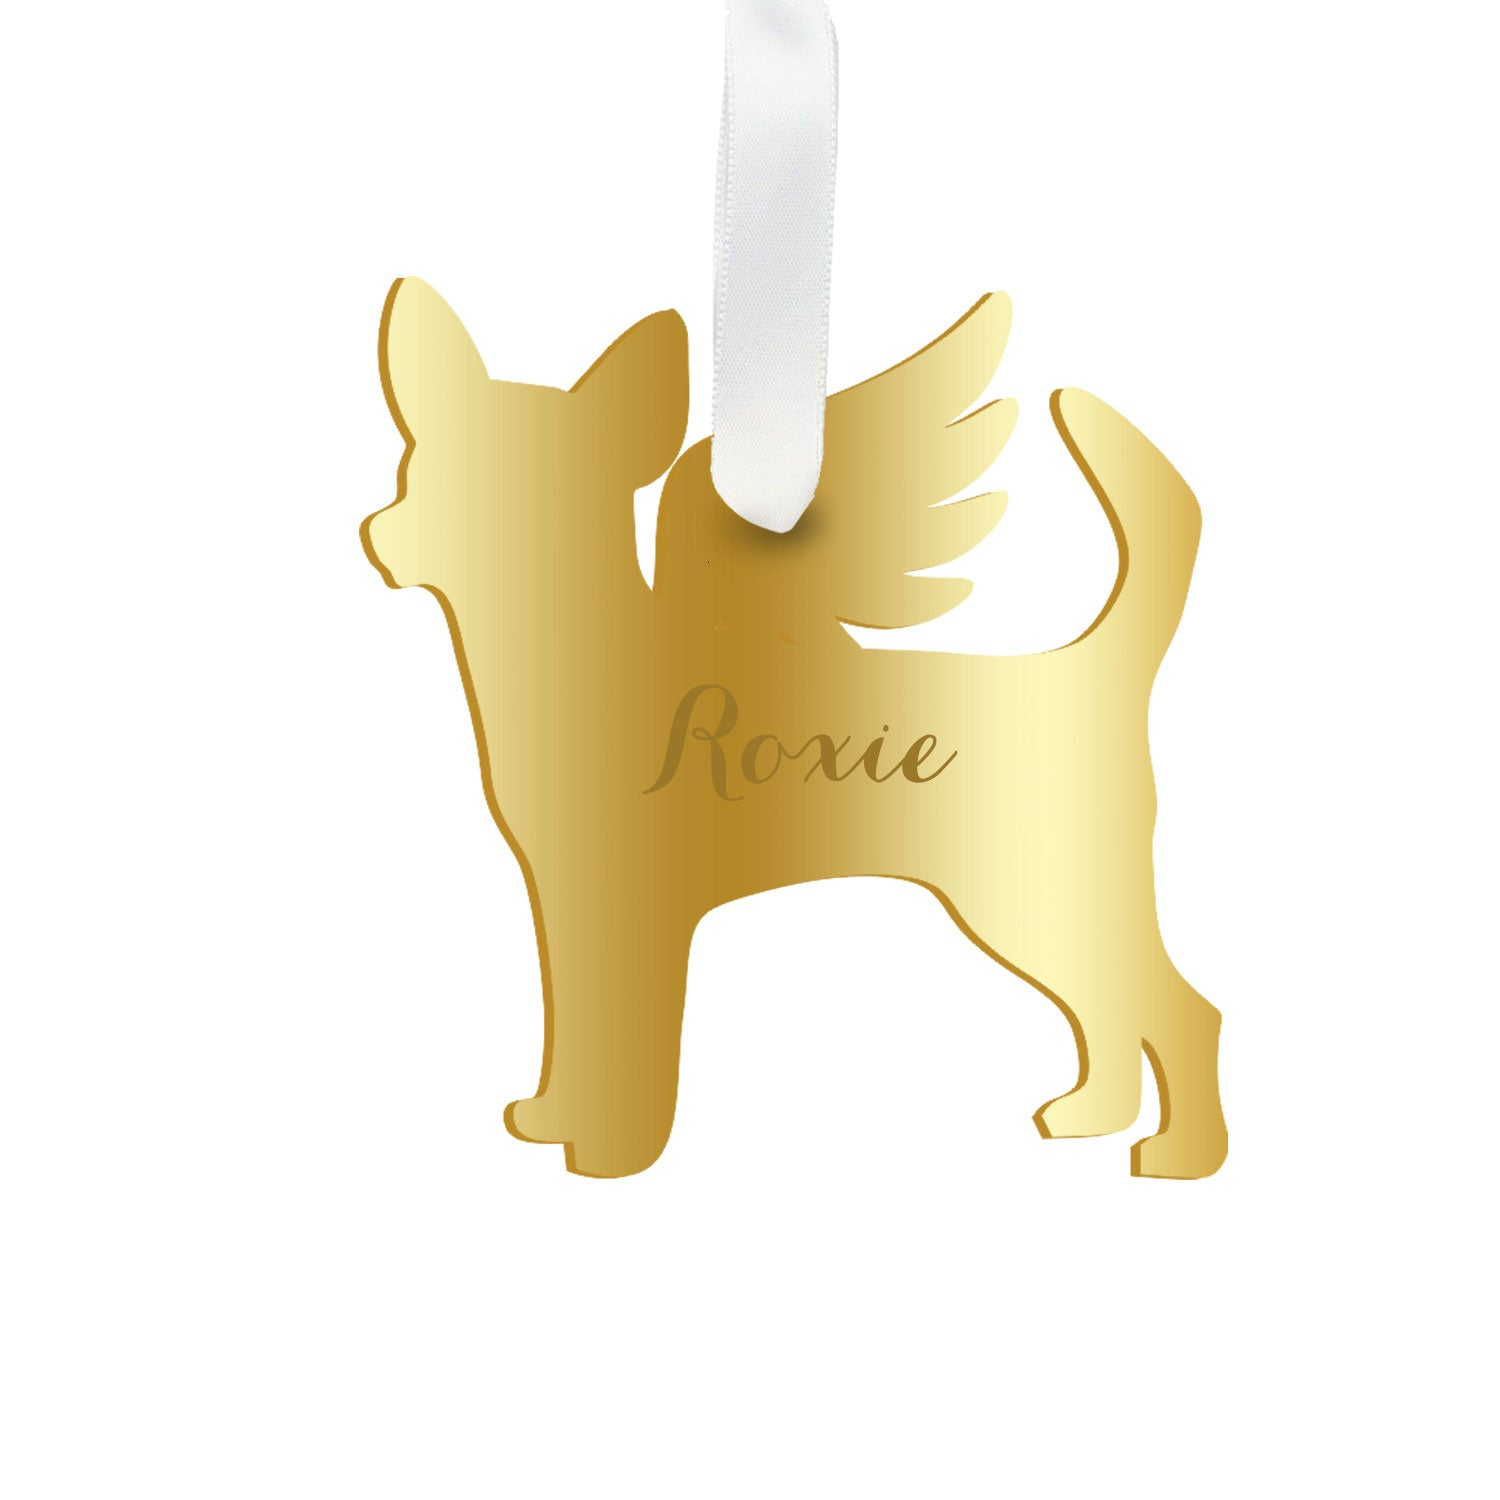 Moon and Lola - Personalized Angel Chihuahua Ornament with wings in mirrored gold